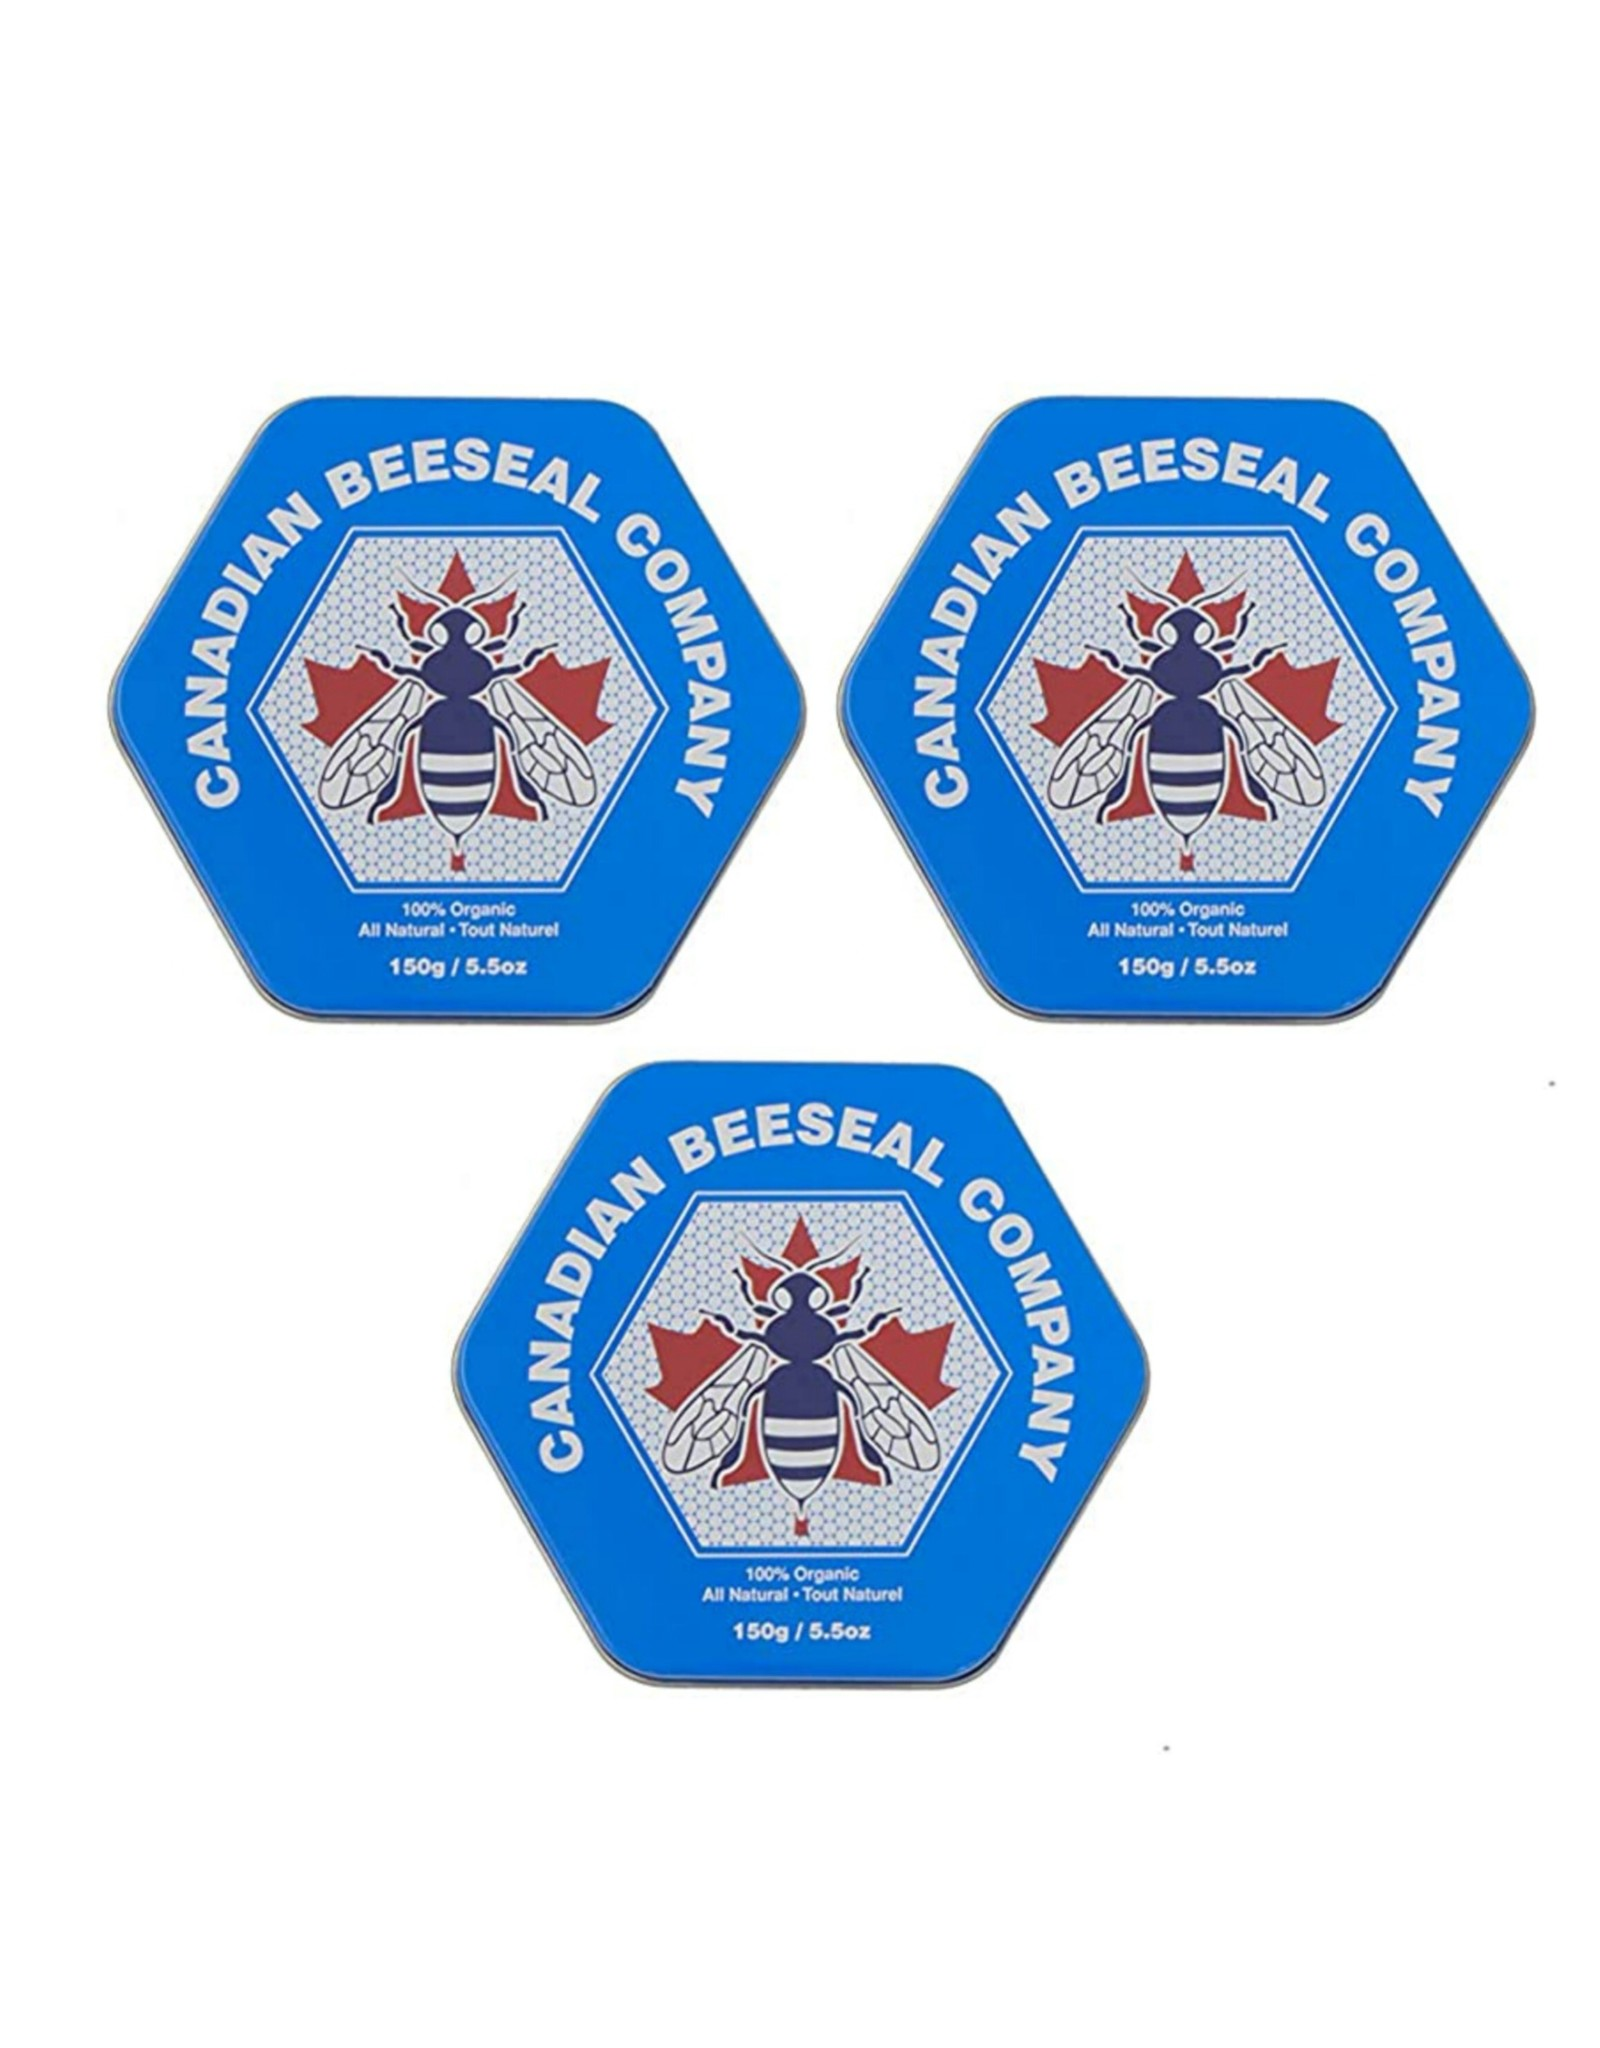 Canadian Beeseal Company 3 Pack Canadian Beeseal 150g/5.5oz